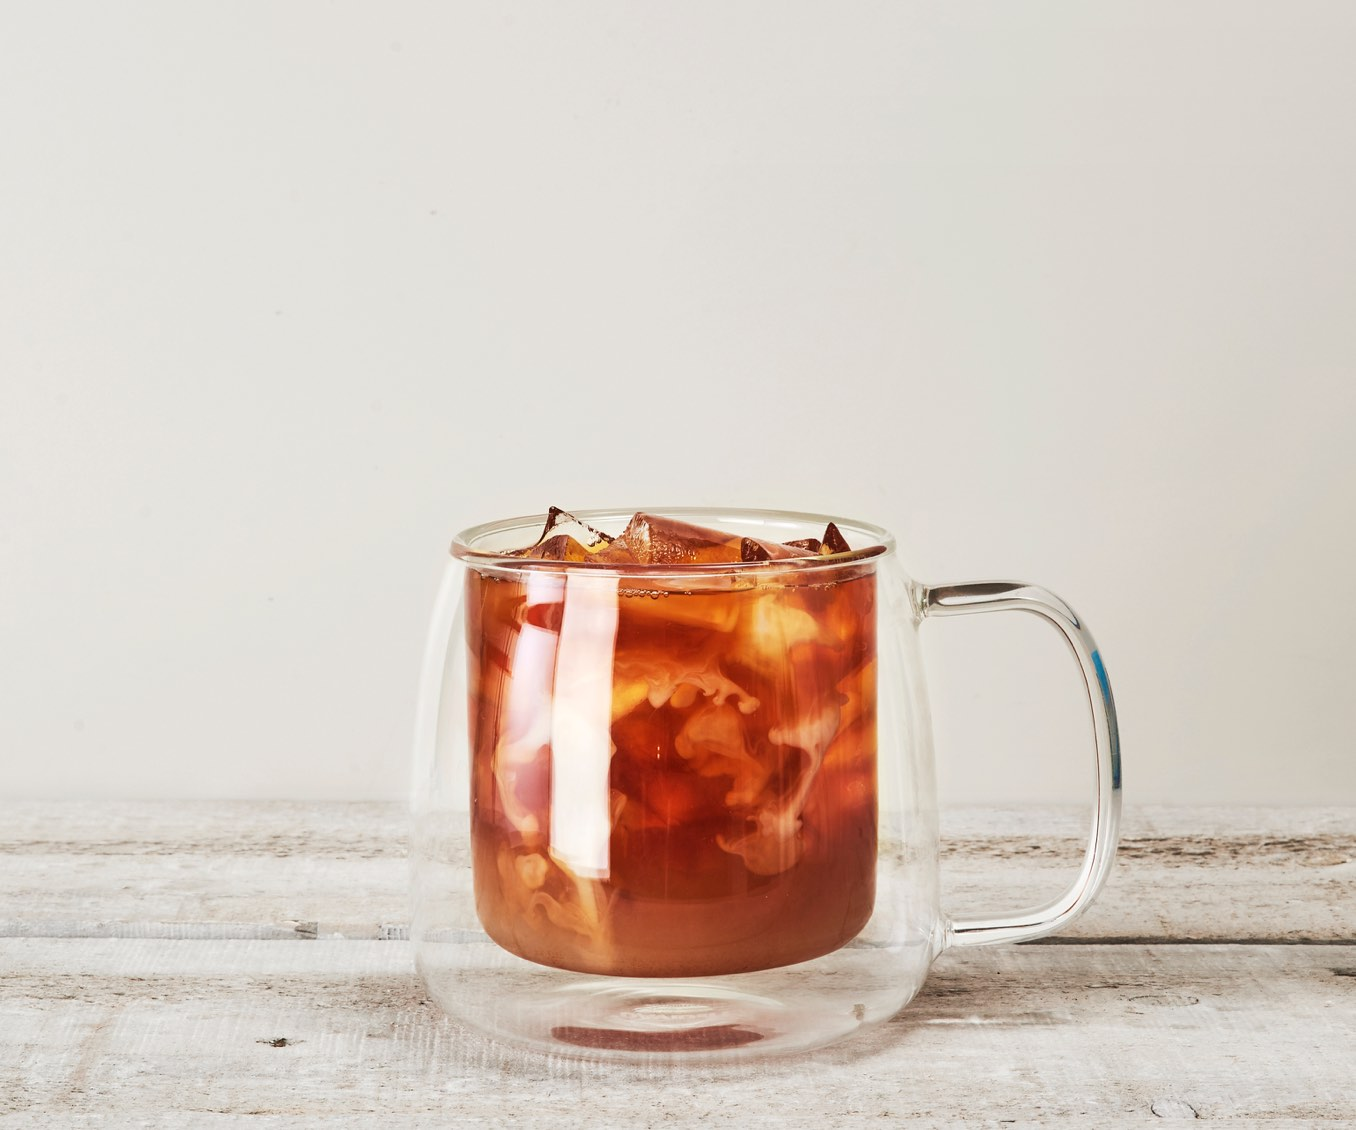 Clear 18 oz double walled glass latte mug filled with chai iced tea.